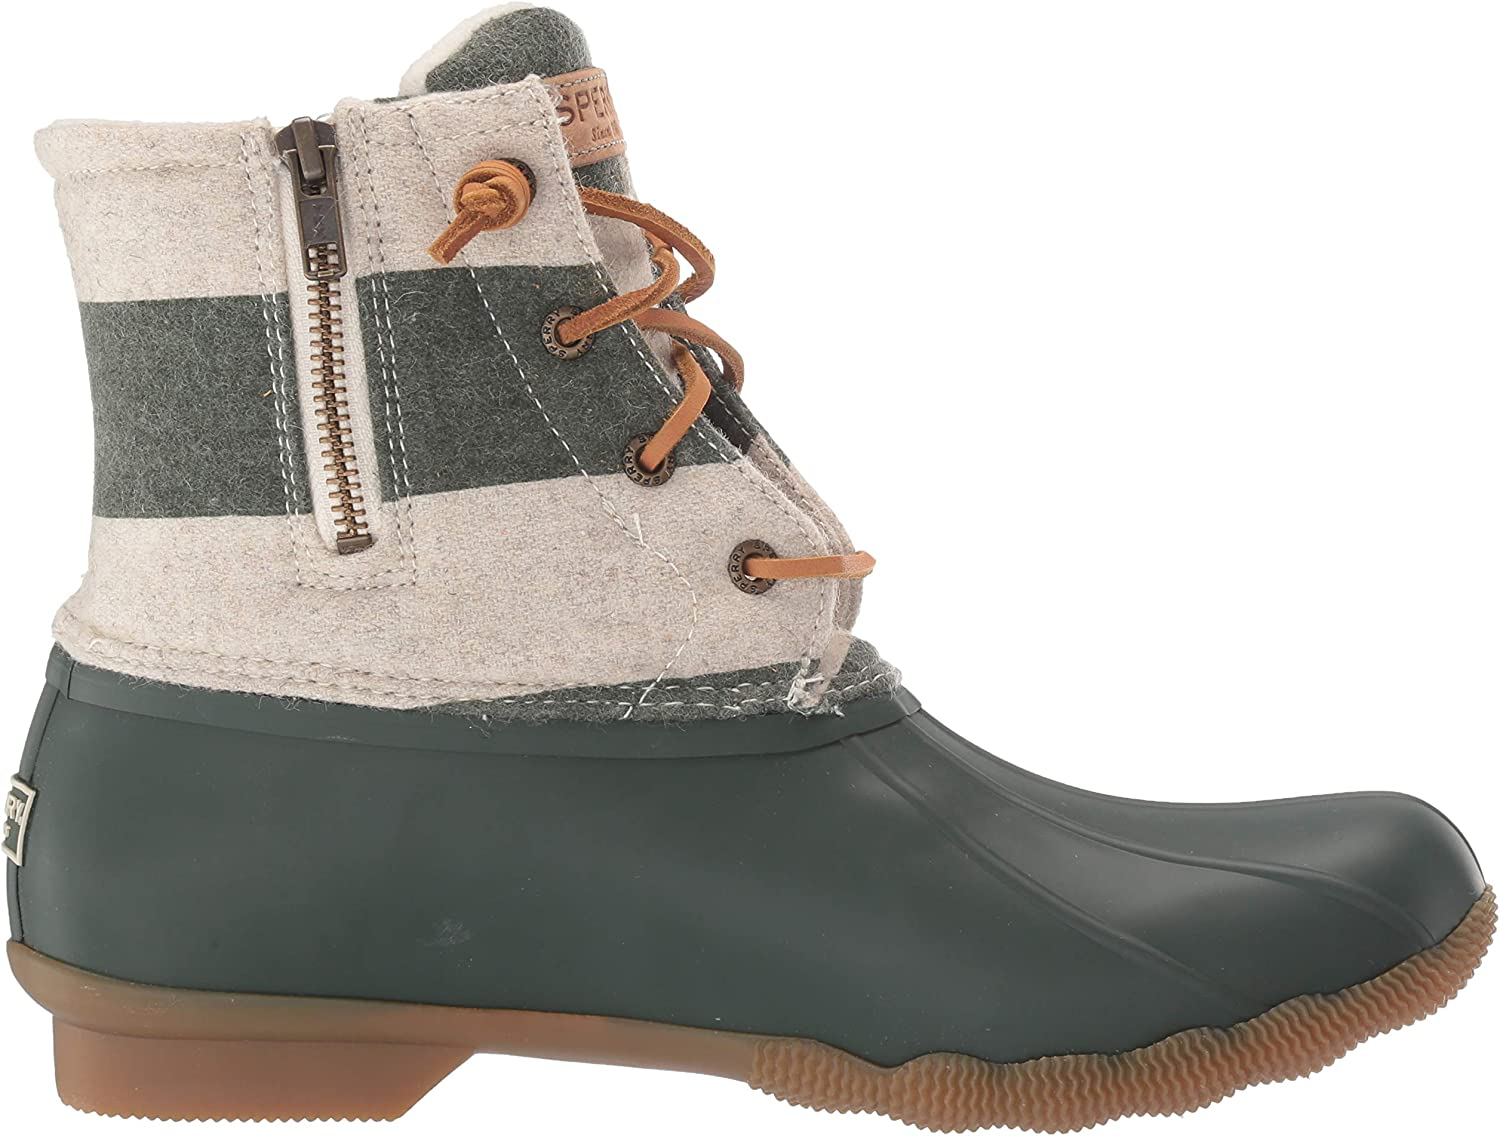 Sperry Top-Sider Womens Saltwater